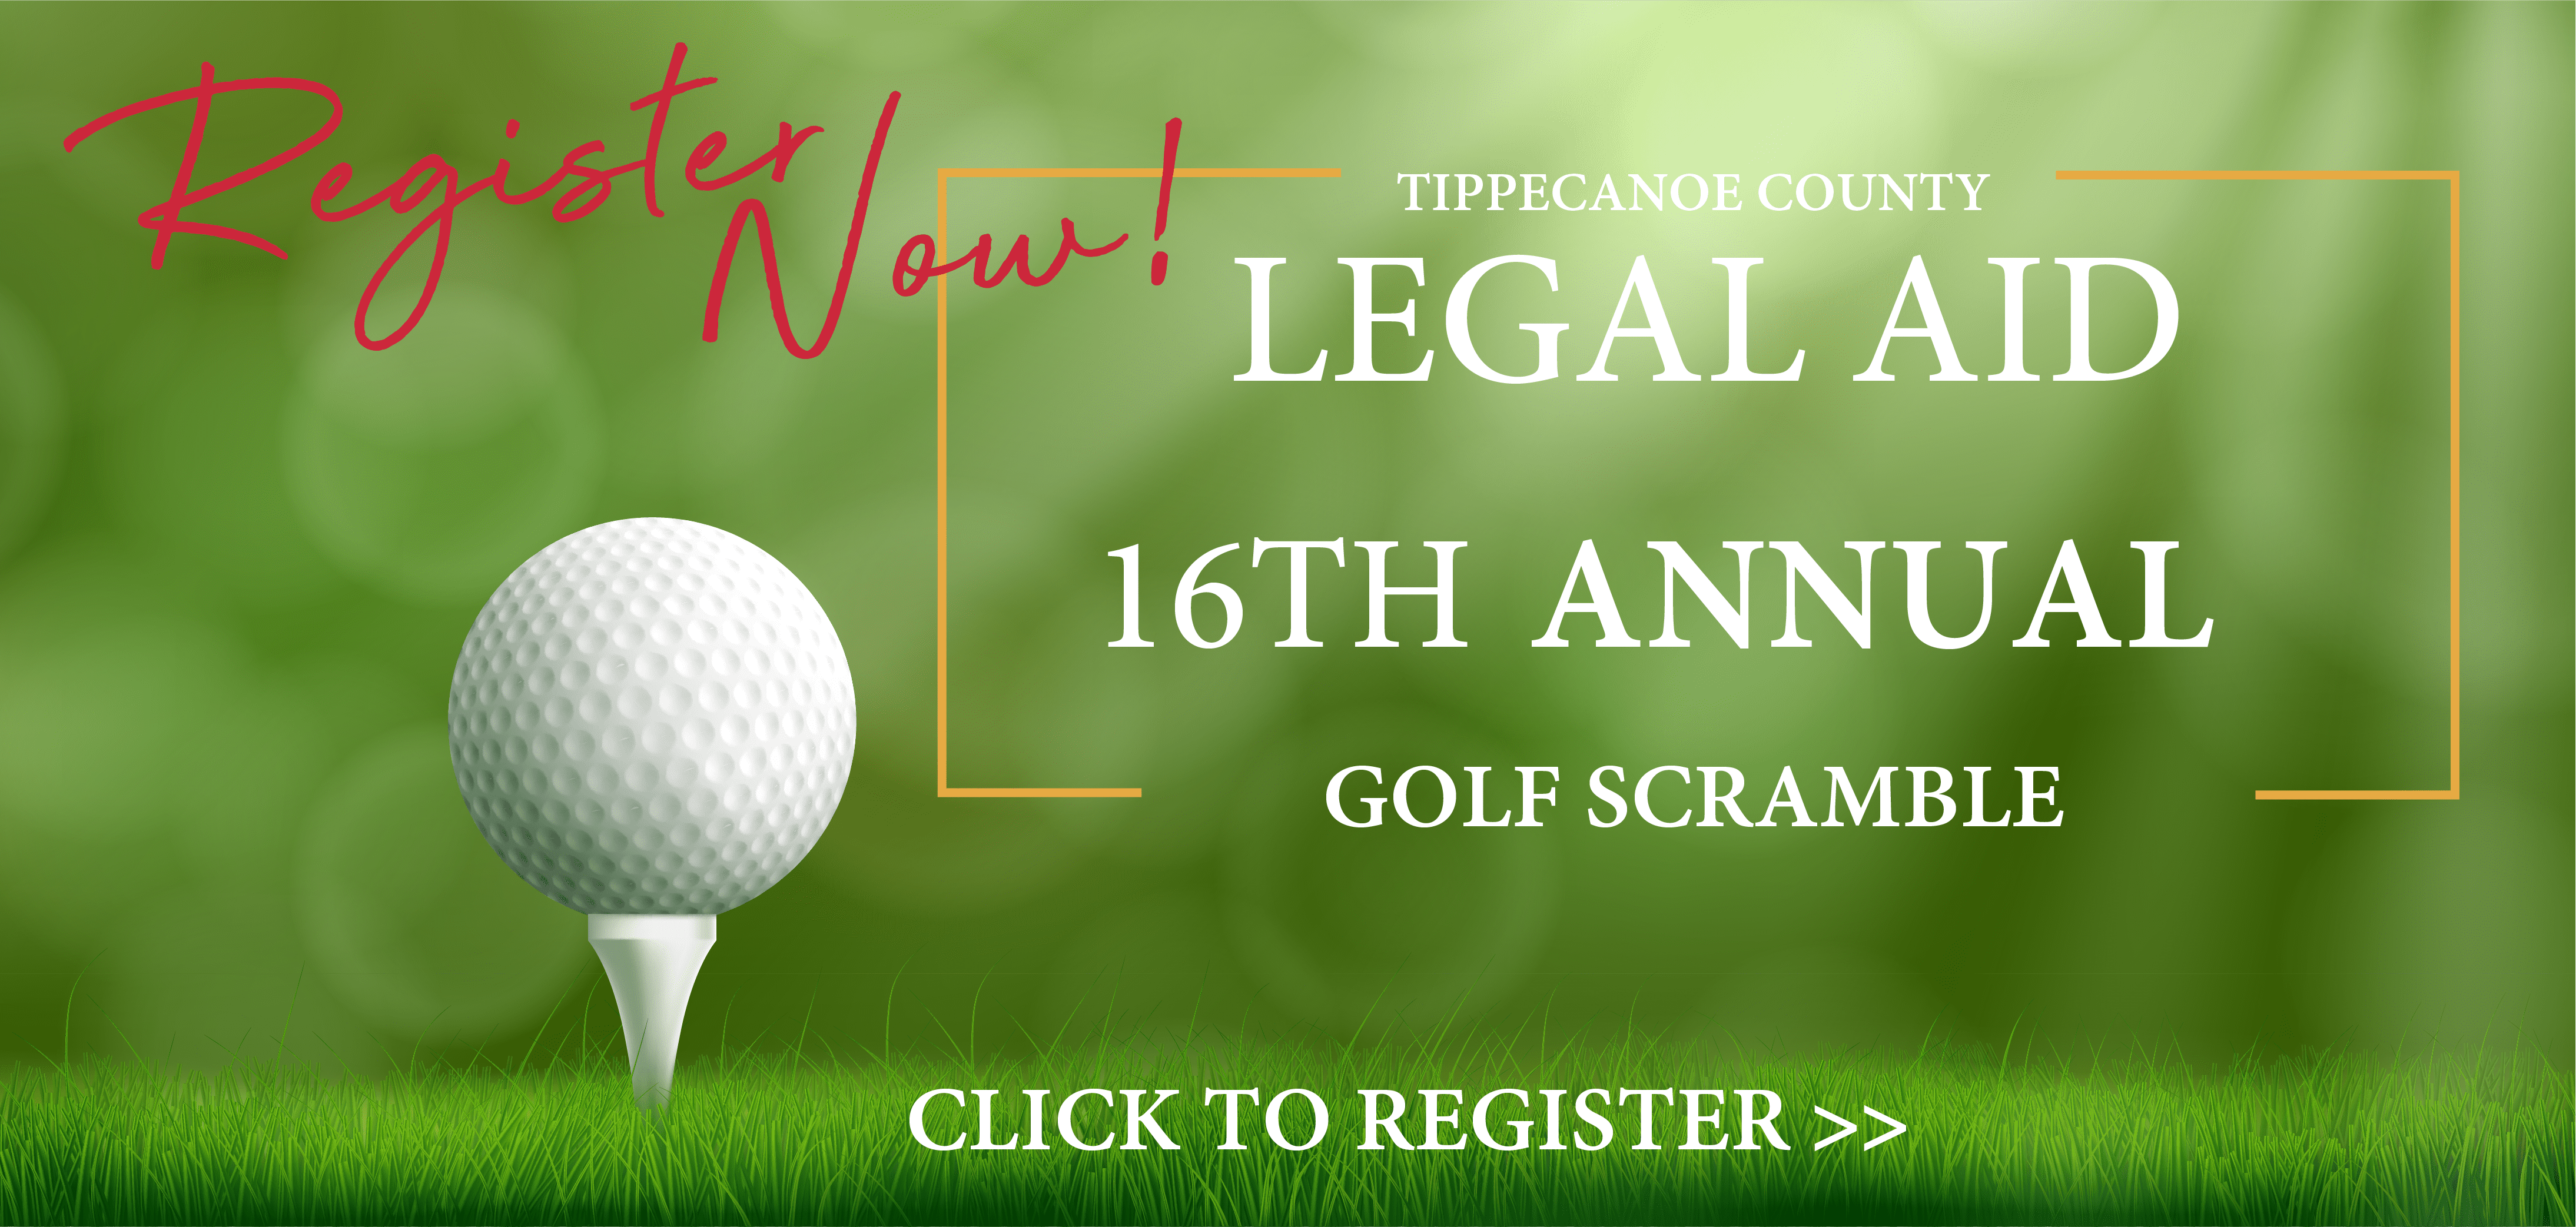 LegalAid-GoldScramble-CTAbanner-July2020